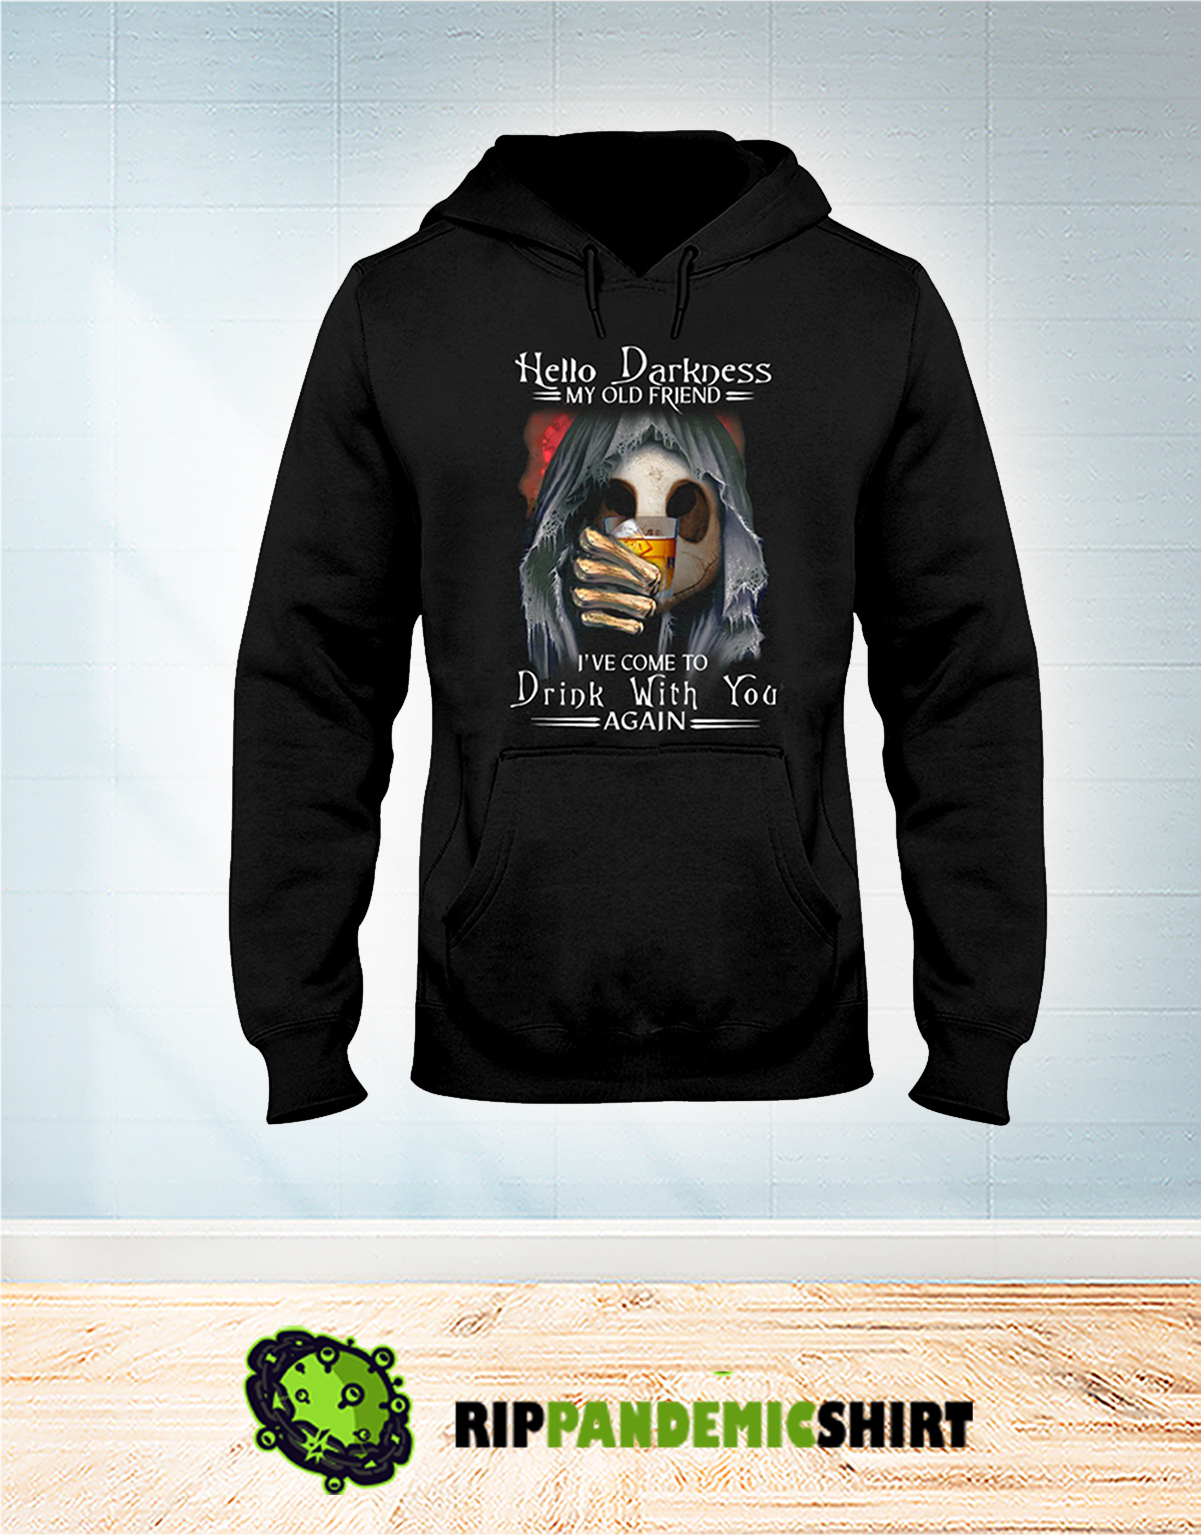 Skull jack skellington Hello darkness my old friend I've come to drink with you again hoodie